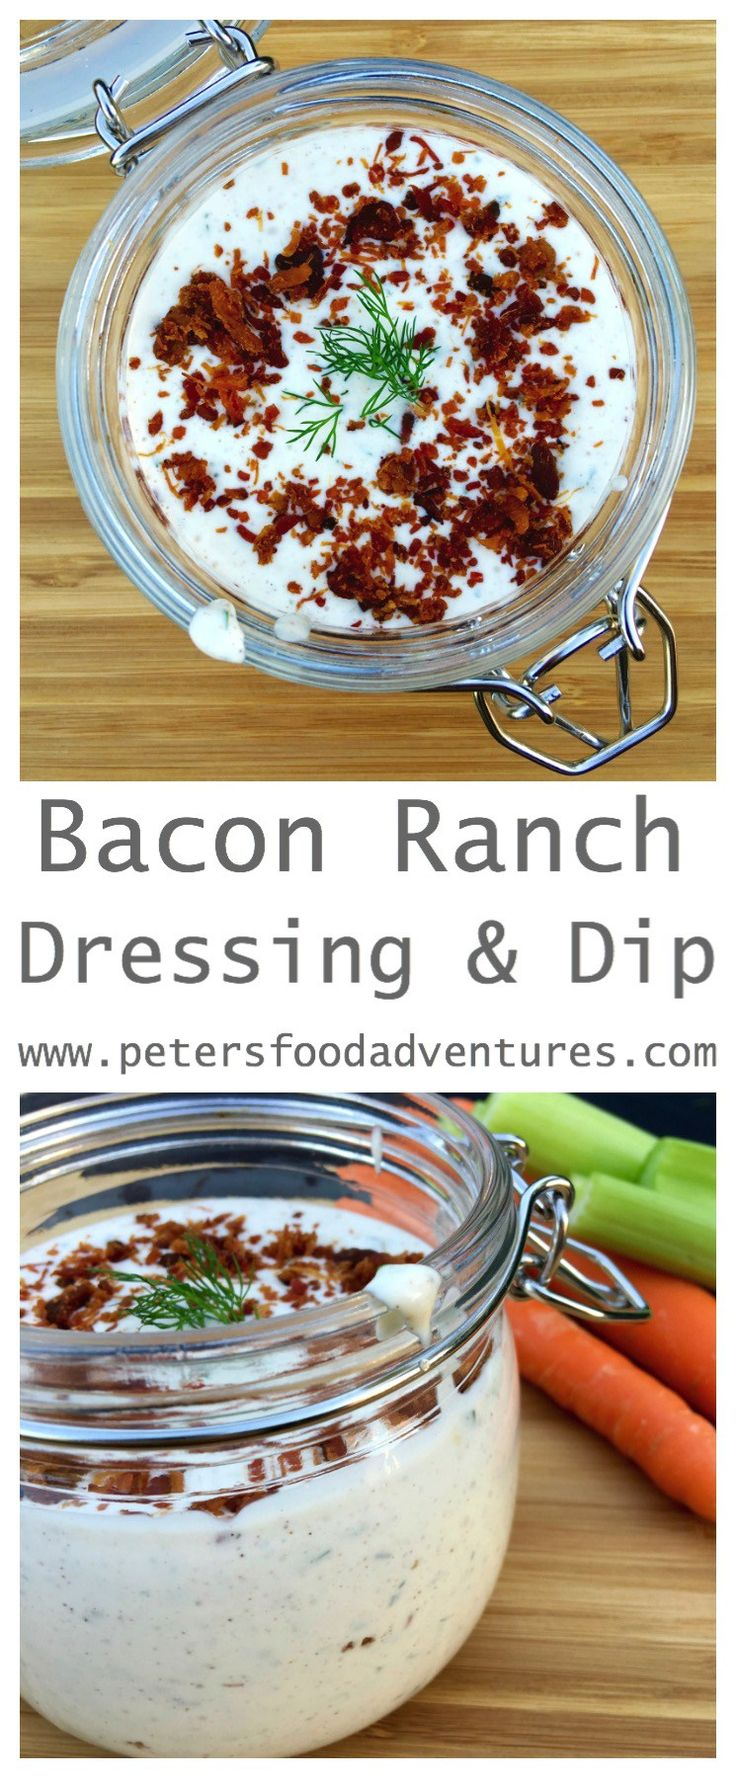 This Homemade Bacon Ranch Salad Dressing & Dip made with Buttermilk, tastes…